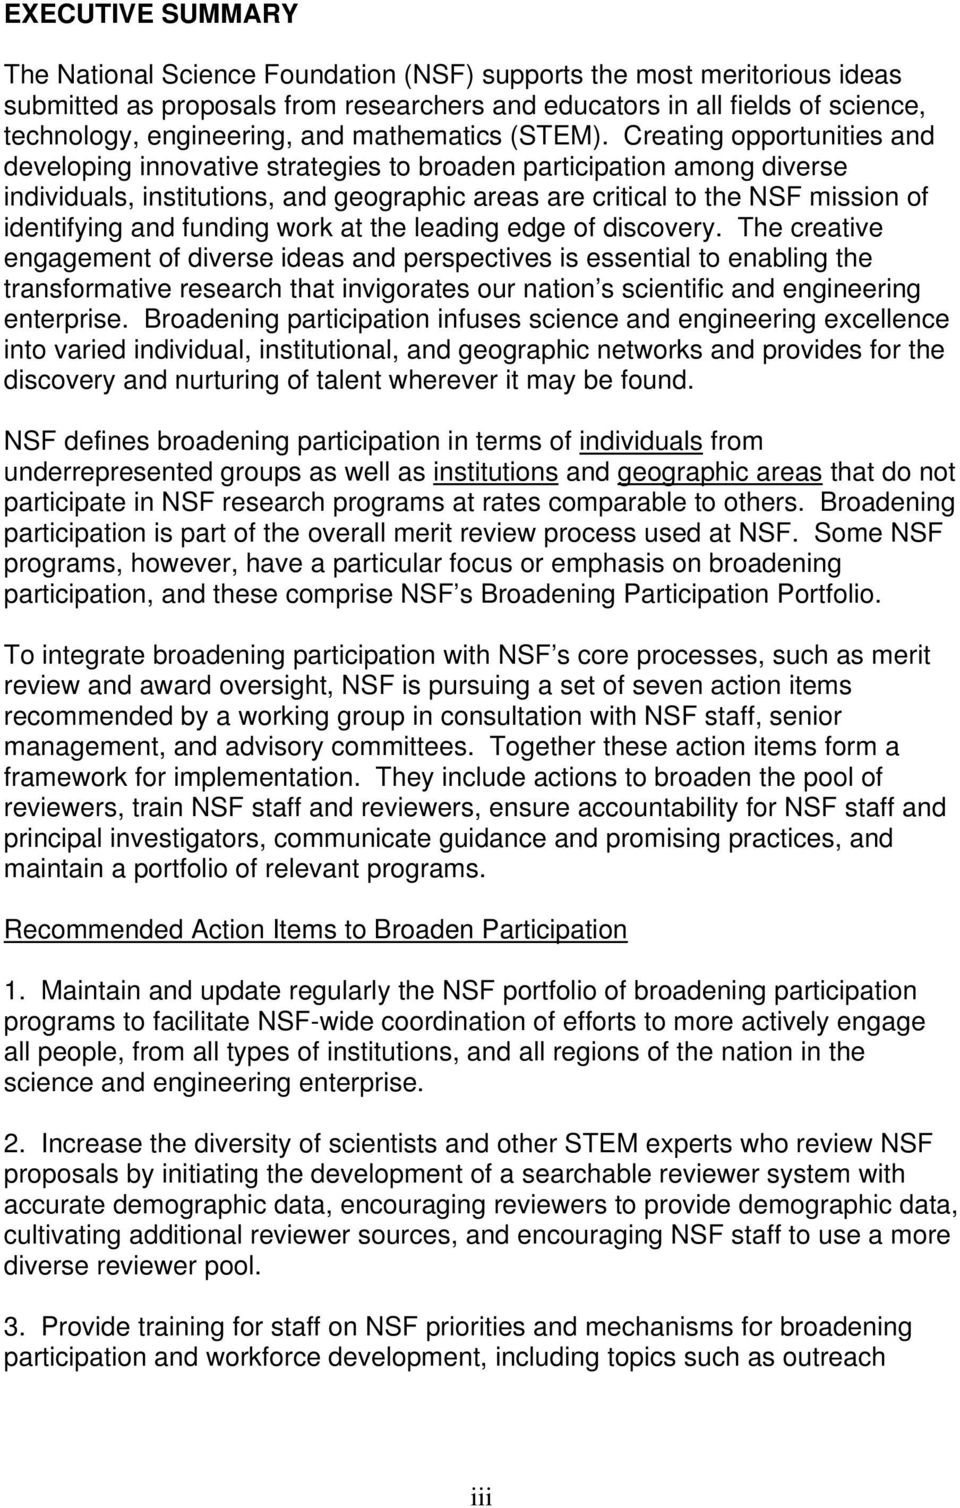 Creating opportunities and developing innovative strategies to broaden participation among diverse individuals, institutions, and geographic areas are critical to the NSF mission of identifying and